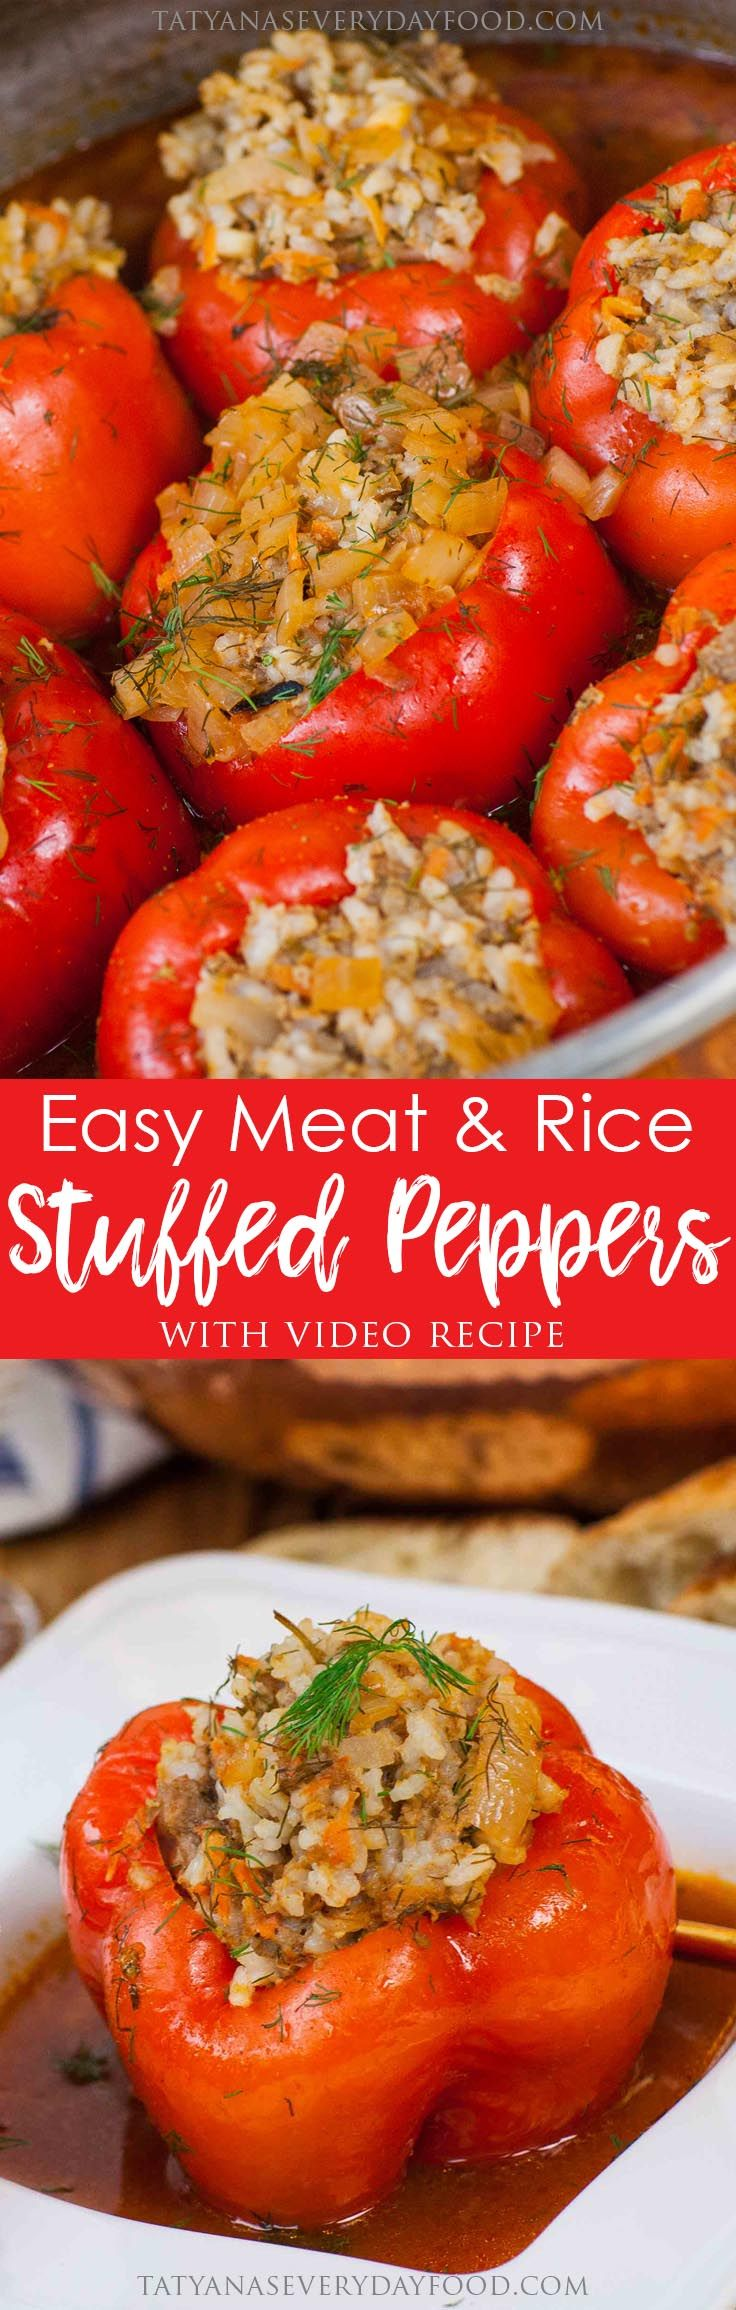 Easy meat rice stuffed peppers tatyanas everyday food dinner easy meat rice stuffed peppers tatyanas everyday food forumfinder Gallery